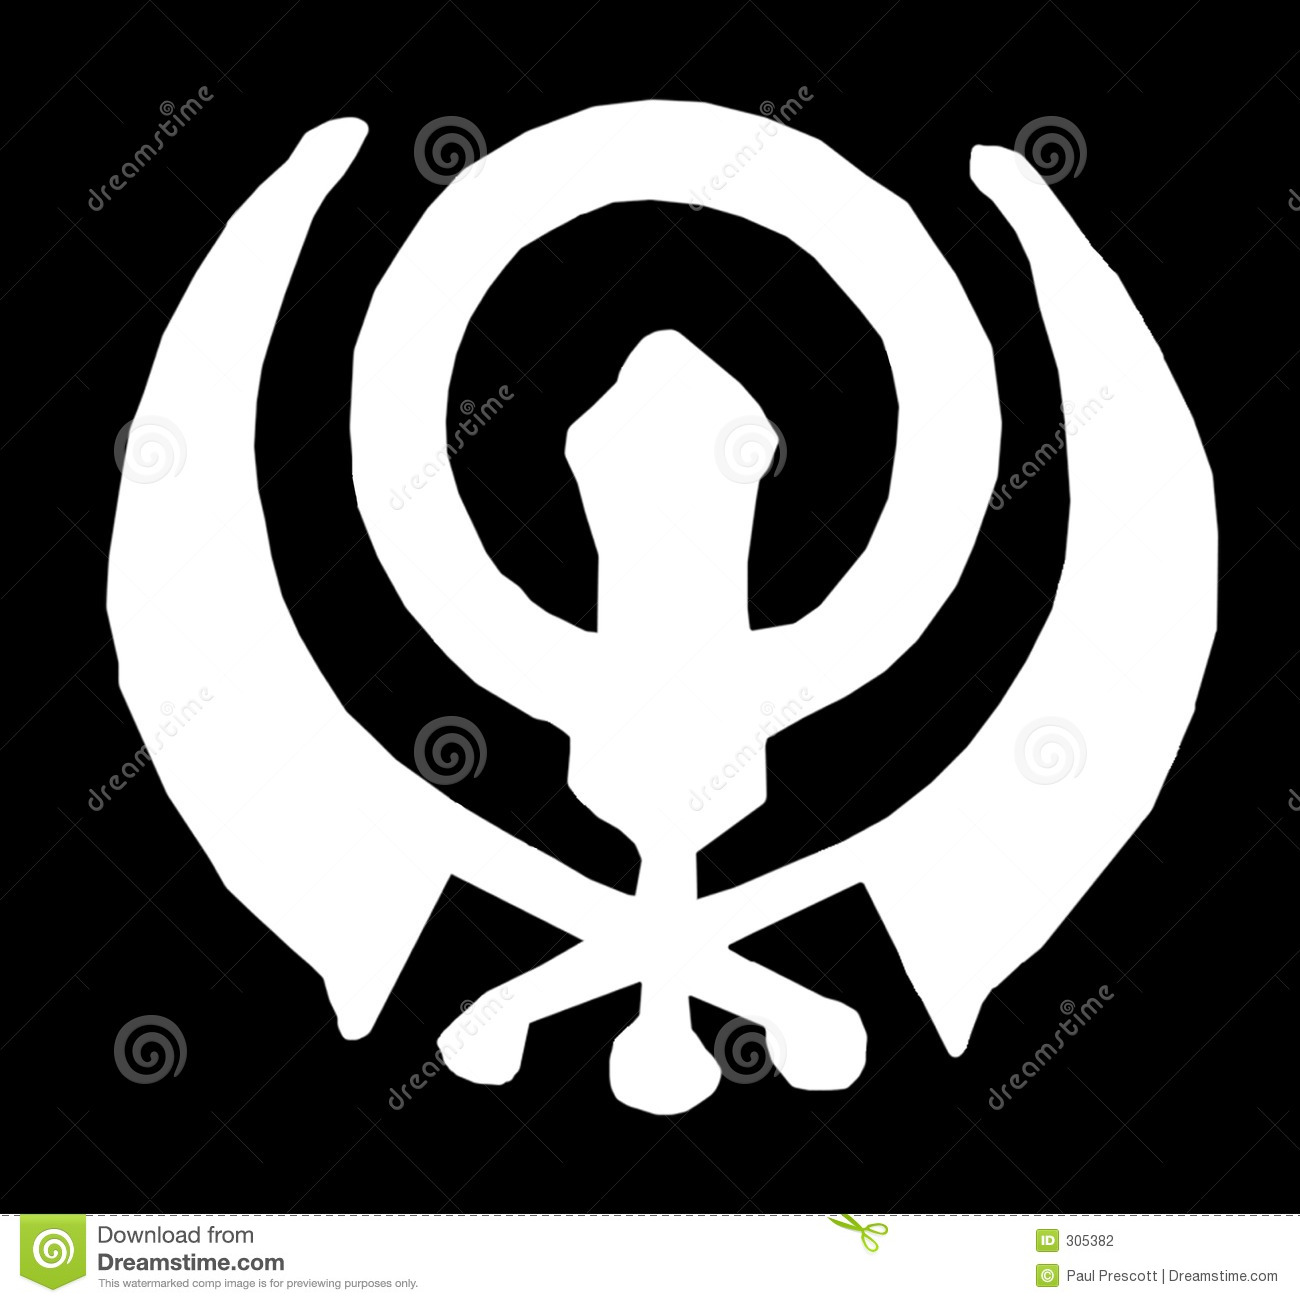 sikh symbol stock illustration illustration of nanak